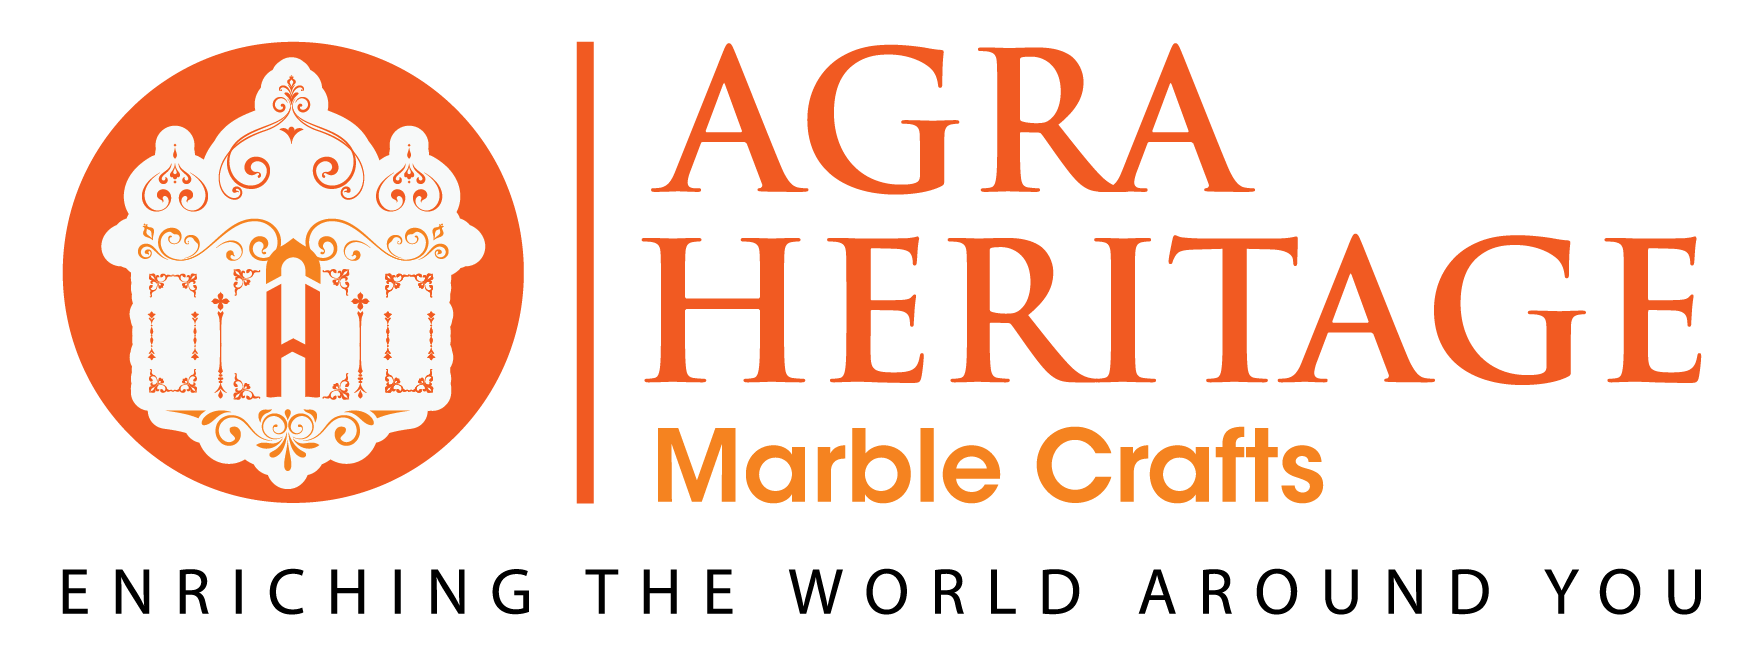 heritage marble crafts